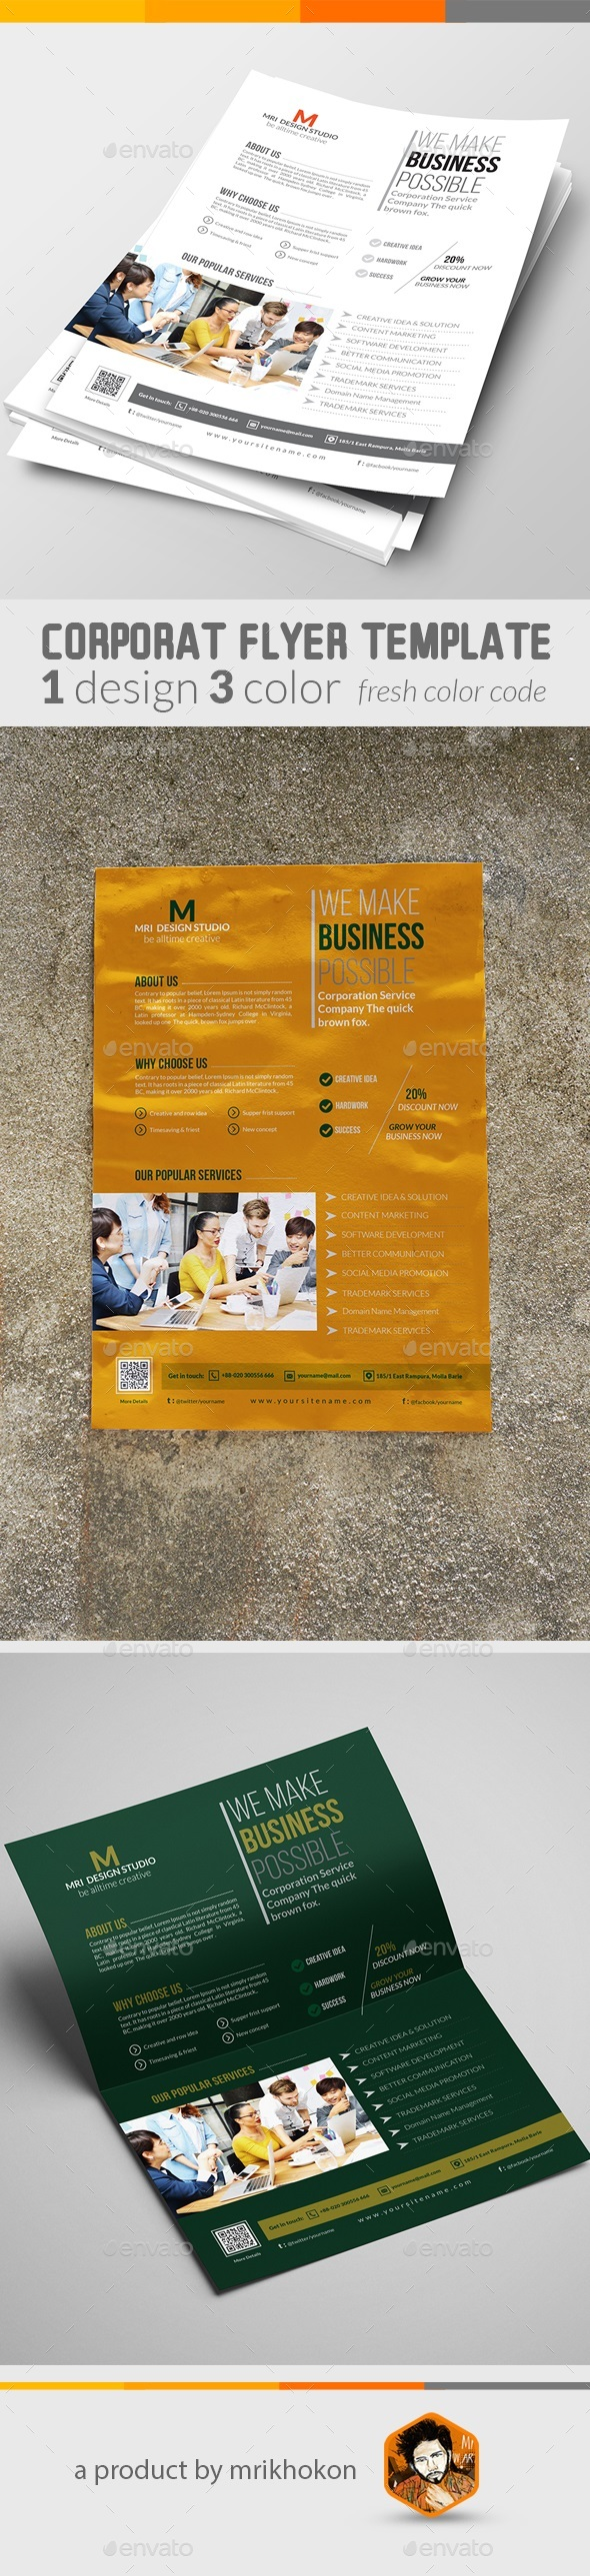 Corporate Flat Flyer Template - Corporate Flyers